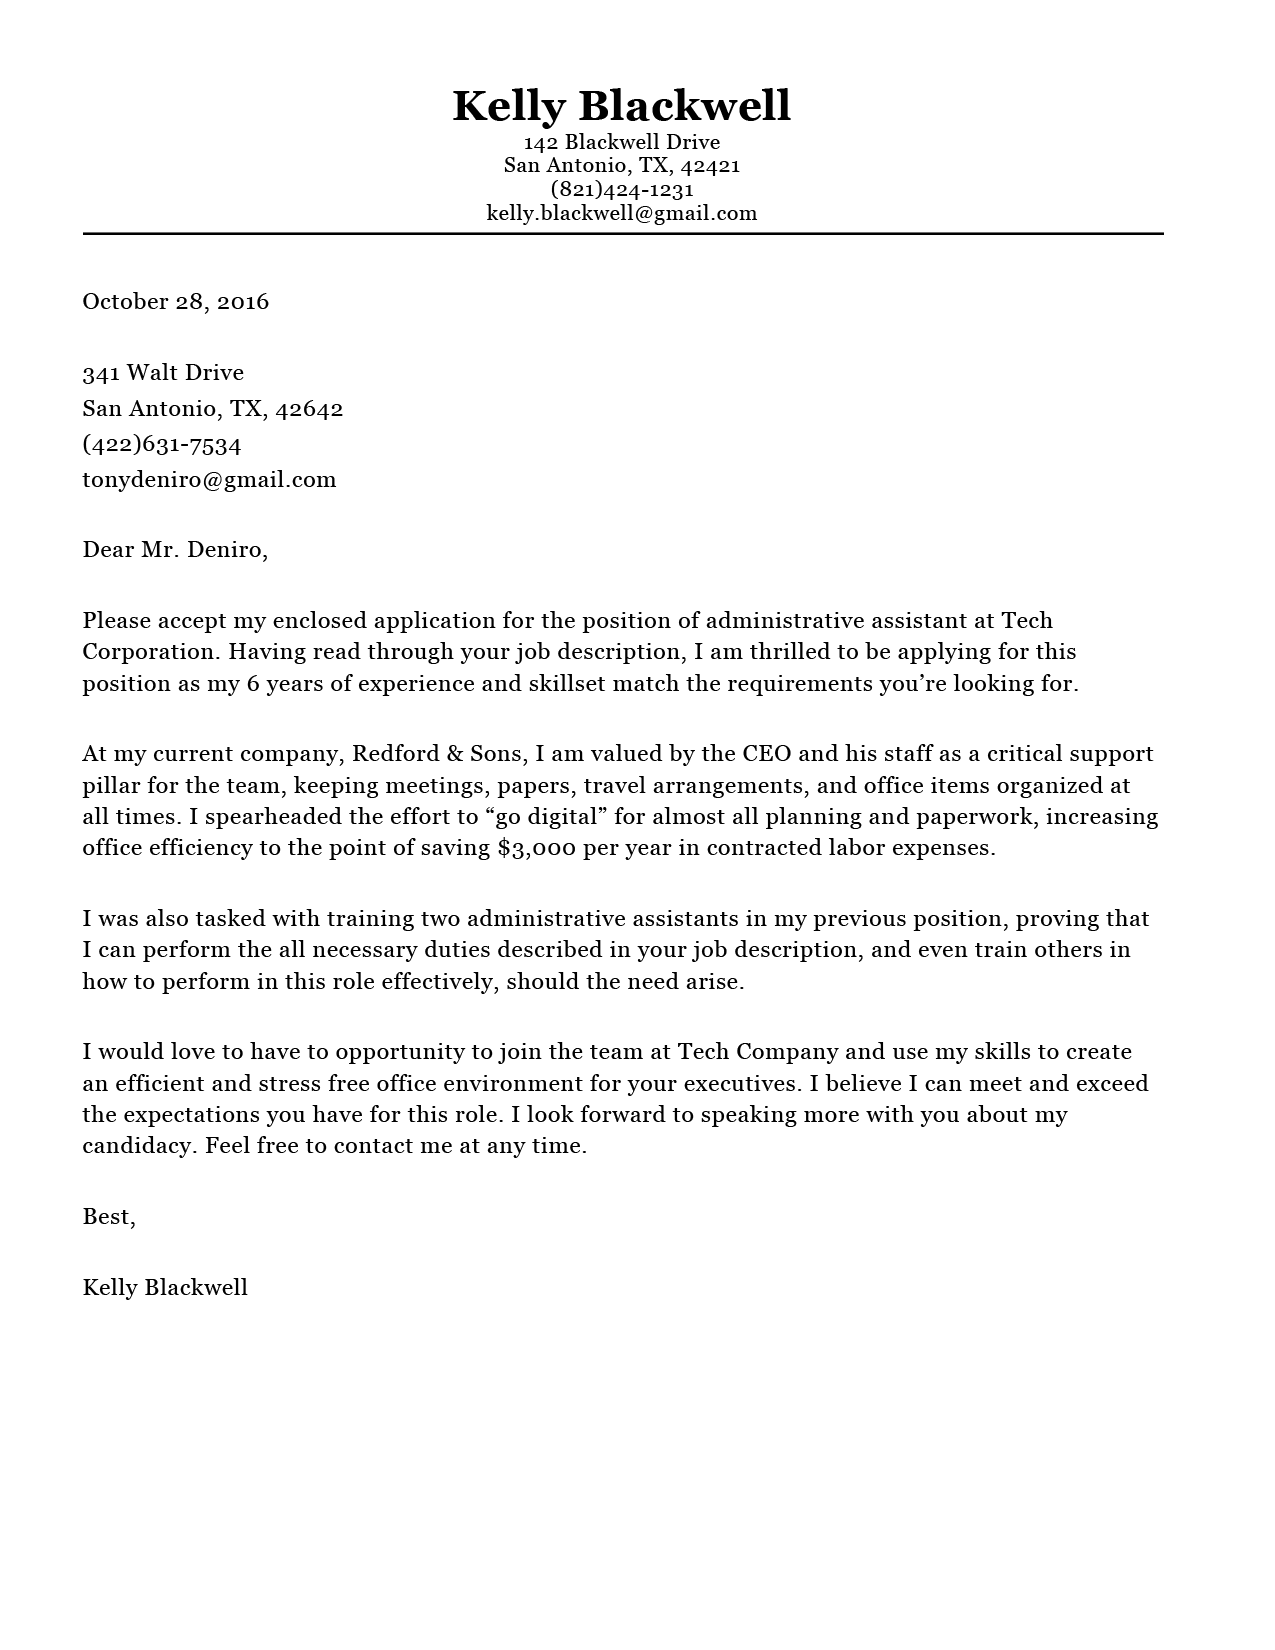 classic cover letter template - How To Make A Cover Letter